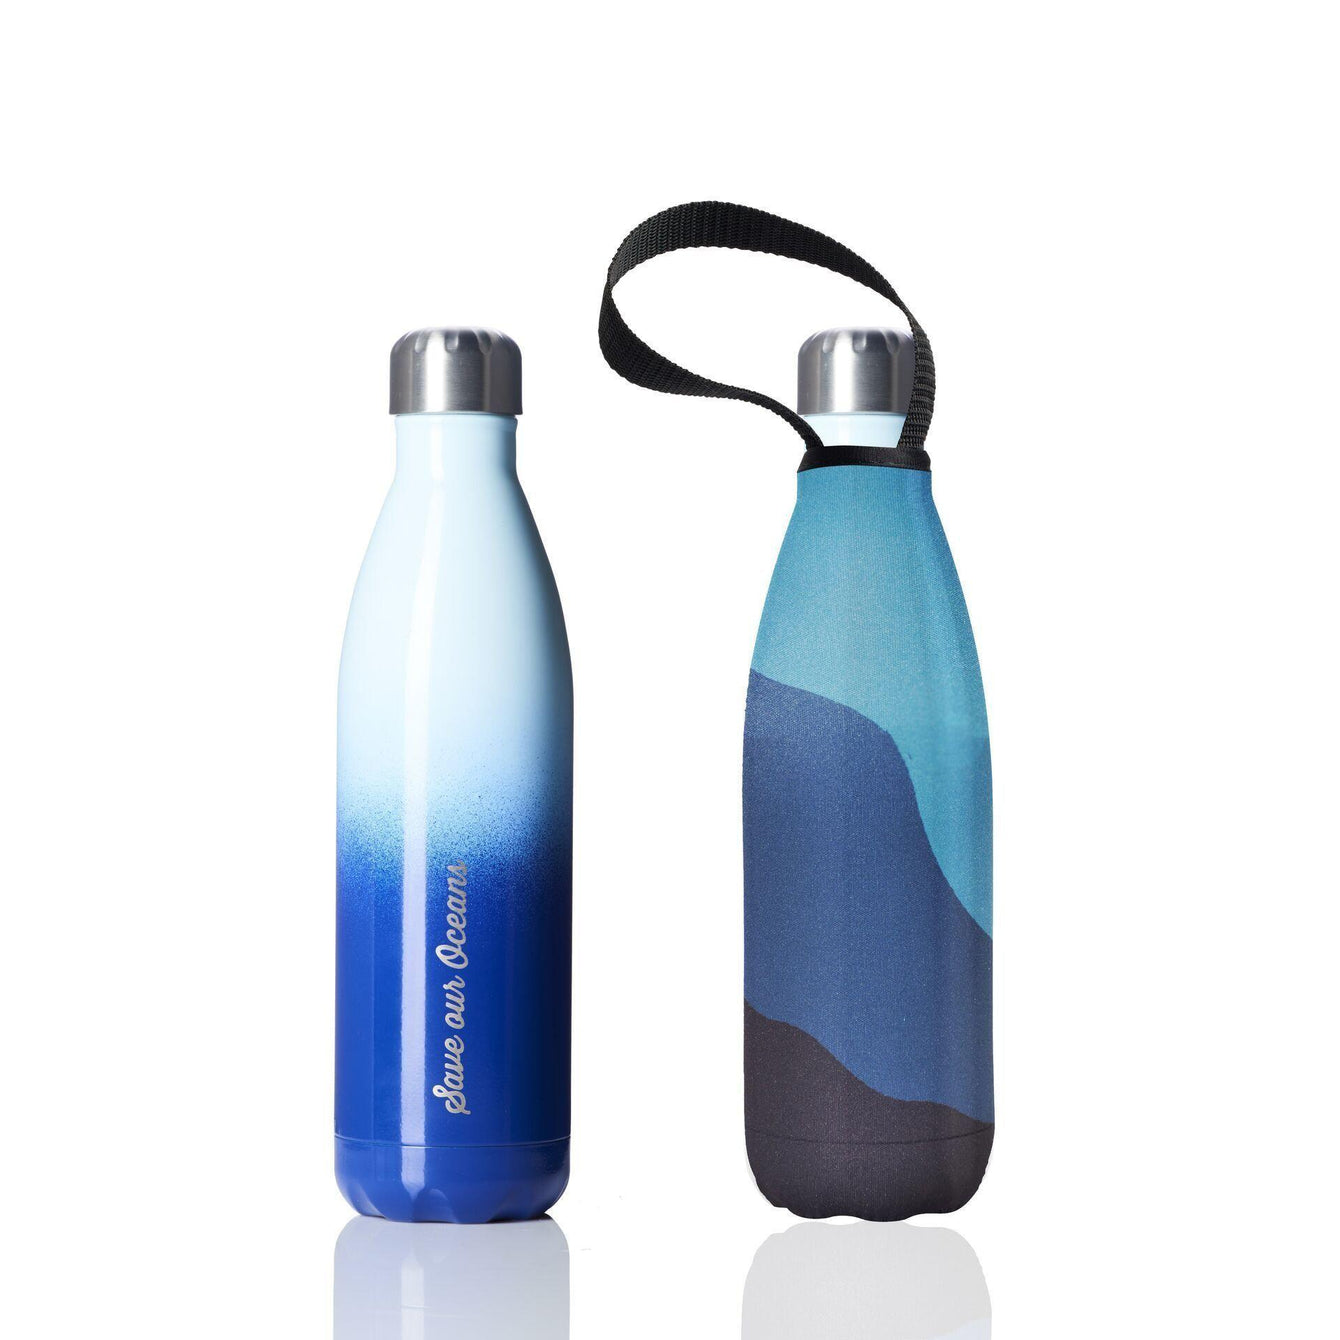 Insulated Eco Friendly 25oz Drink Bottle with Patterned Carry Covers-Home - Travel + Outdoors - Drink Bottles-BBBYO USA-Blue Gradient in Big Blue Pattern-Peccadilly